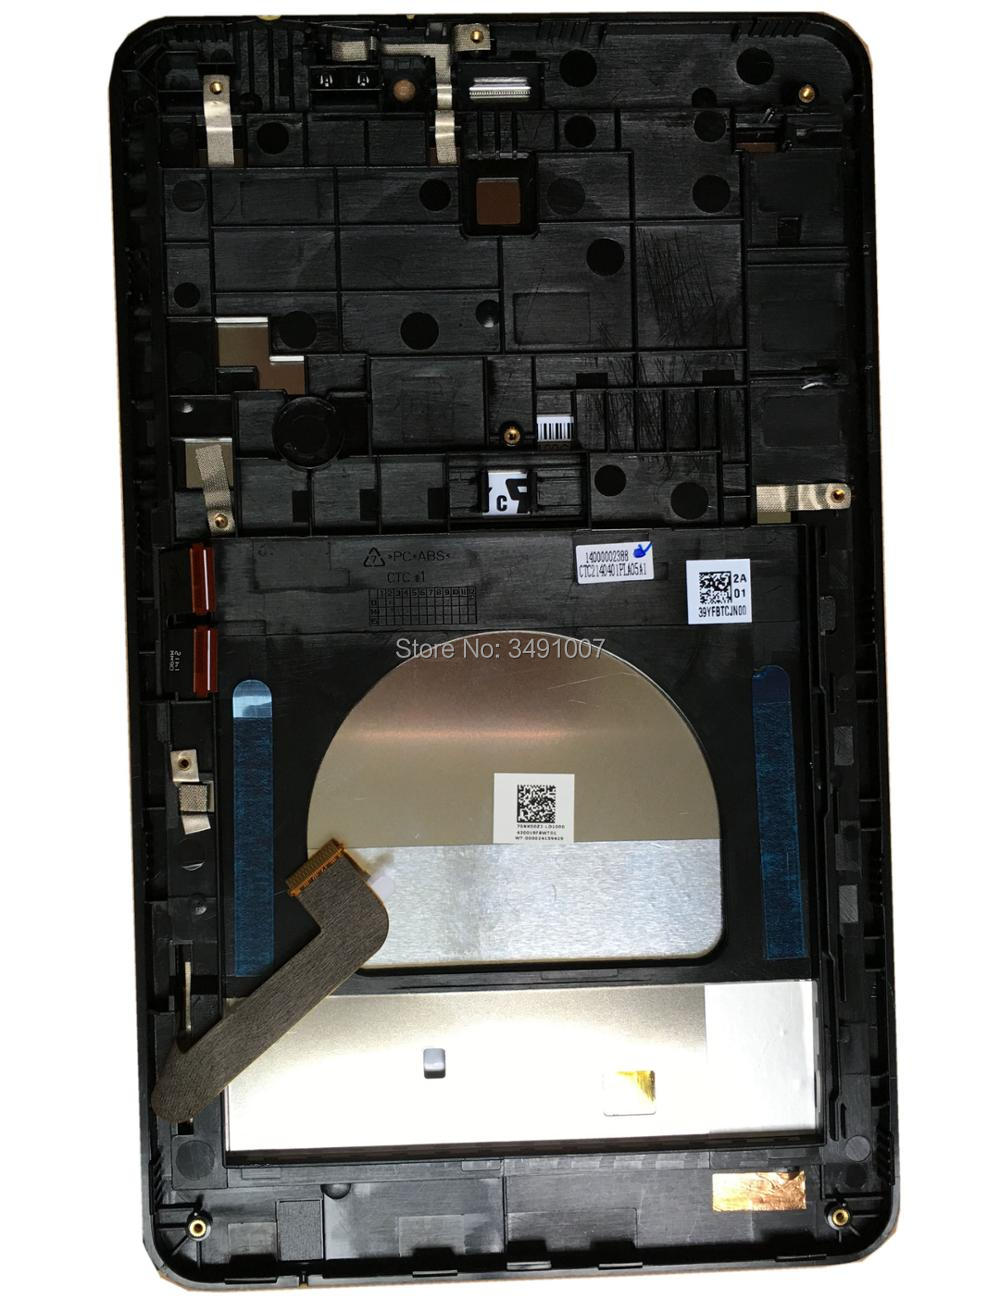 5472L FPC-1 Rev:2 LCD LED Screen Touch Screen Digitizer Assembly with Frame for ASUS ME175CG K00Z b080uan01 4 lcd led touch screen digitizer glass assembly frame for dell venue 8 3840 tablet 5613w fpc 1